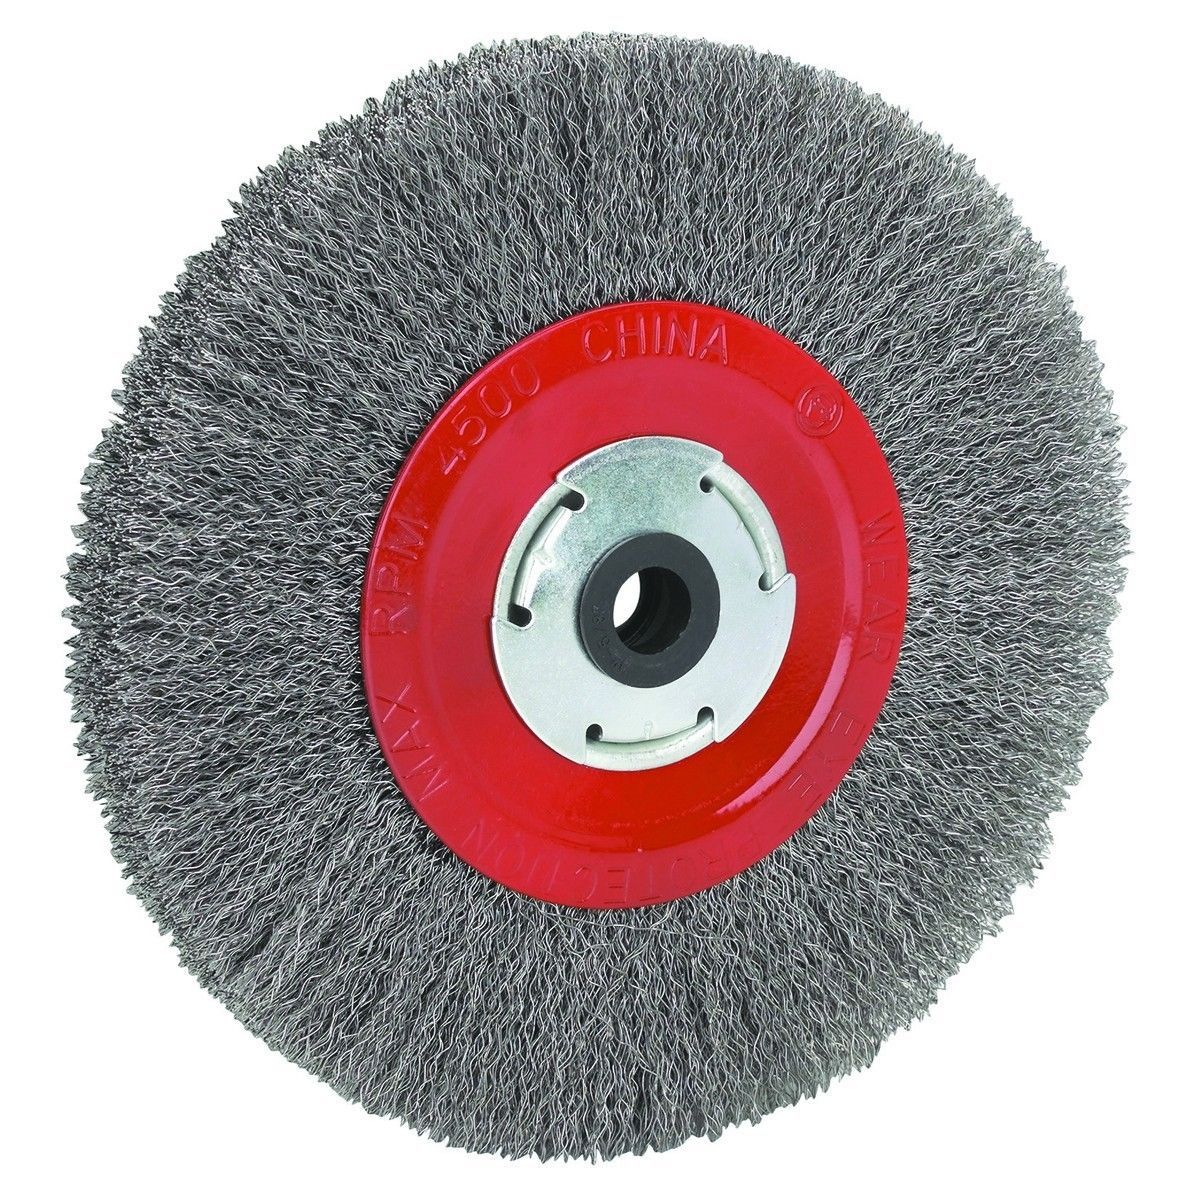 Grinder Wheels And Accessories 79703 8 Inch Round Wire Wheel For